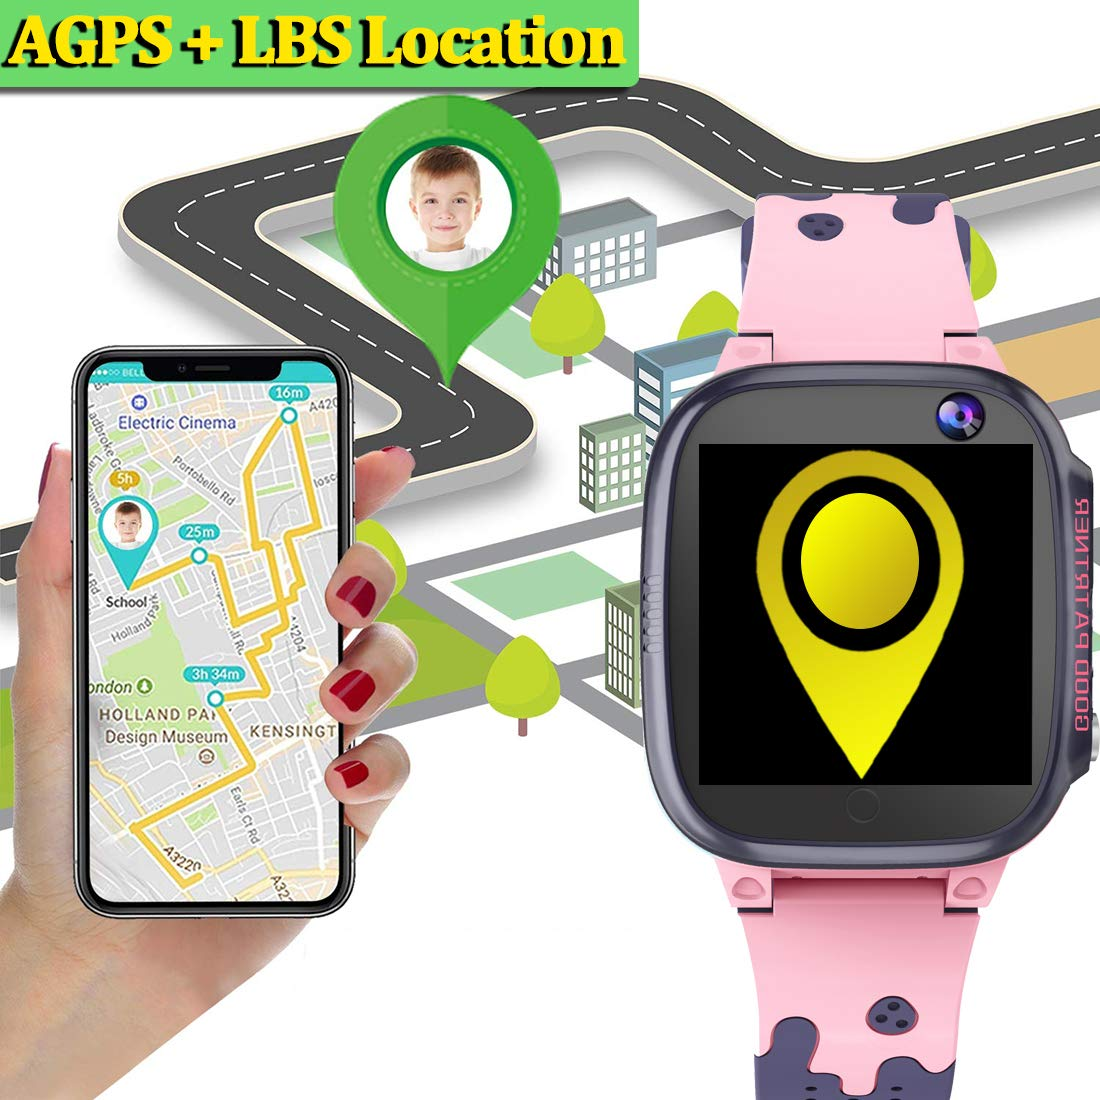 MiKin Children Smart Watches for Girls Boys Age 3-12 Kids Smartwatch Phone with GPS Tracker 2 Way Call SOS Remote Camera Touch Screen Alarm Clock Flashlight Voice Chat Gizmo Wrist Watch Android iOS by MiKin (Image #2)